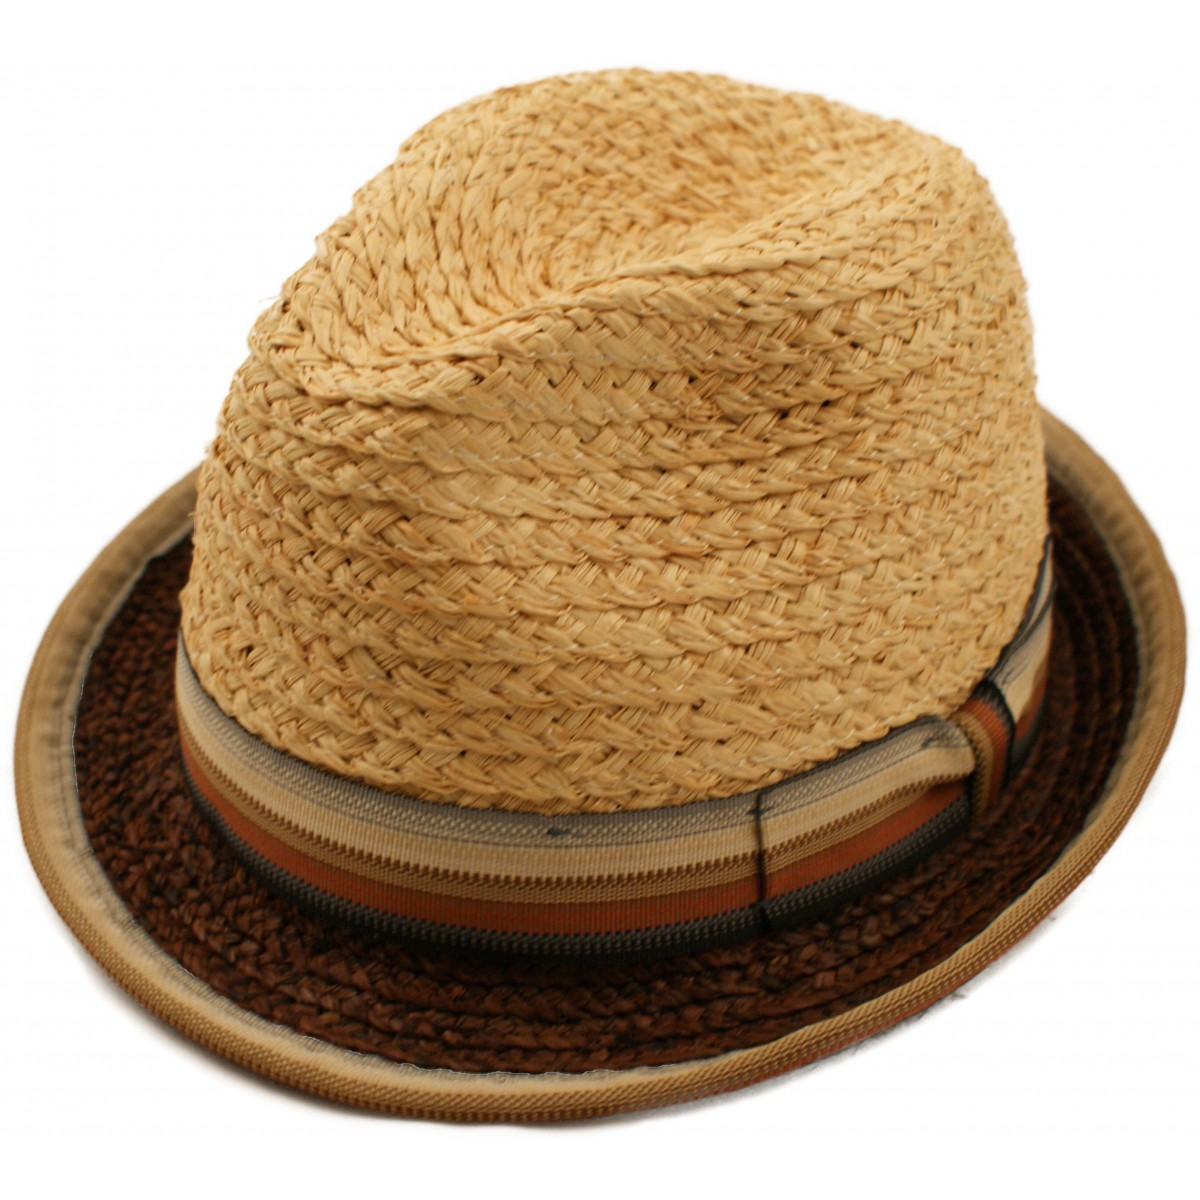 b23a49ec Retro 1940s 50s Mens Straw Trilby Style Summer Sun Hat With Striped Outer  Band